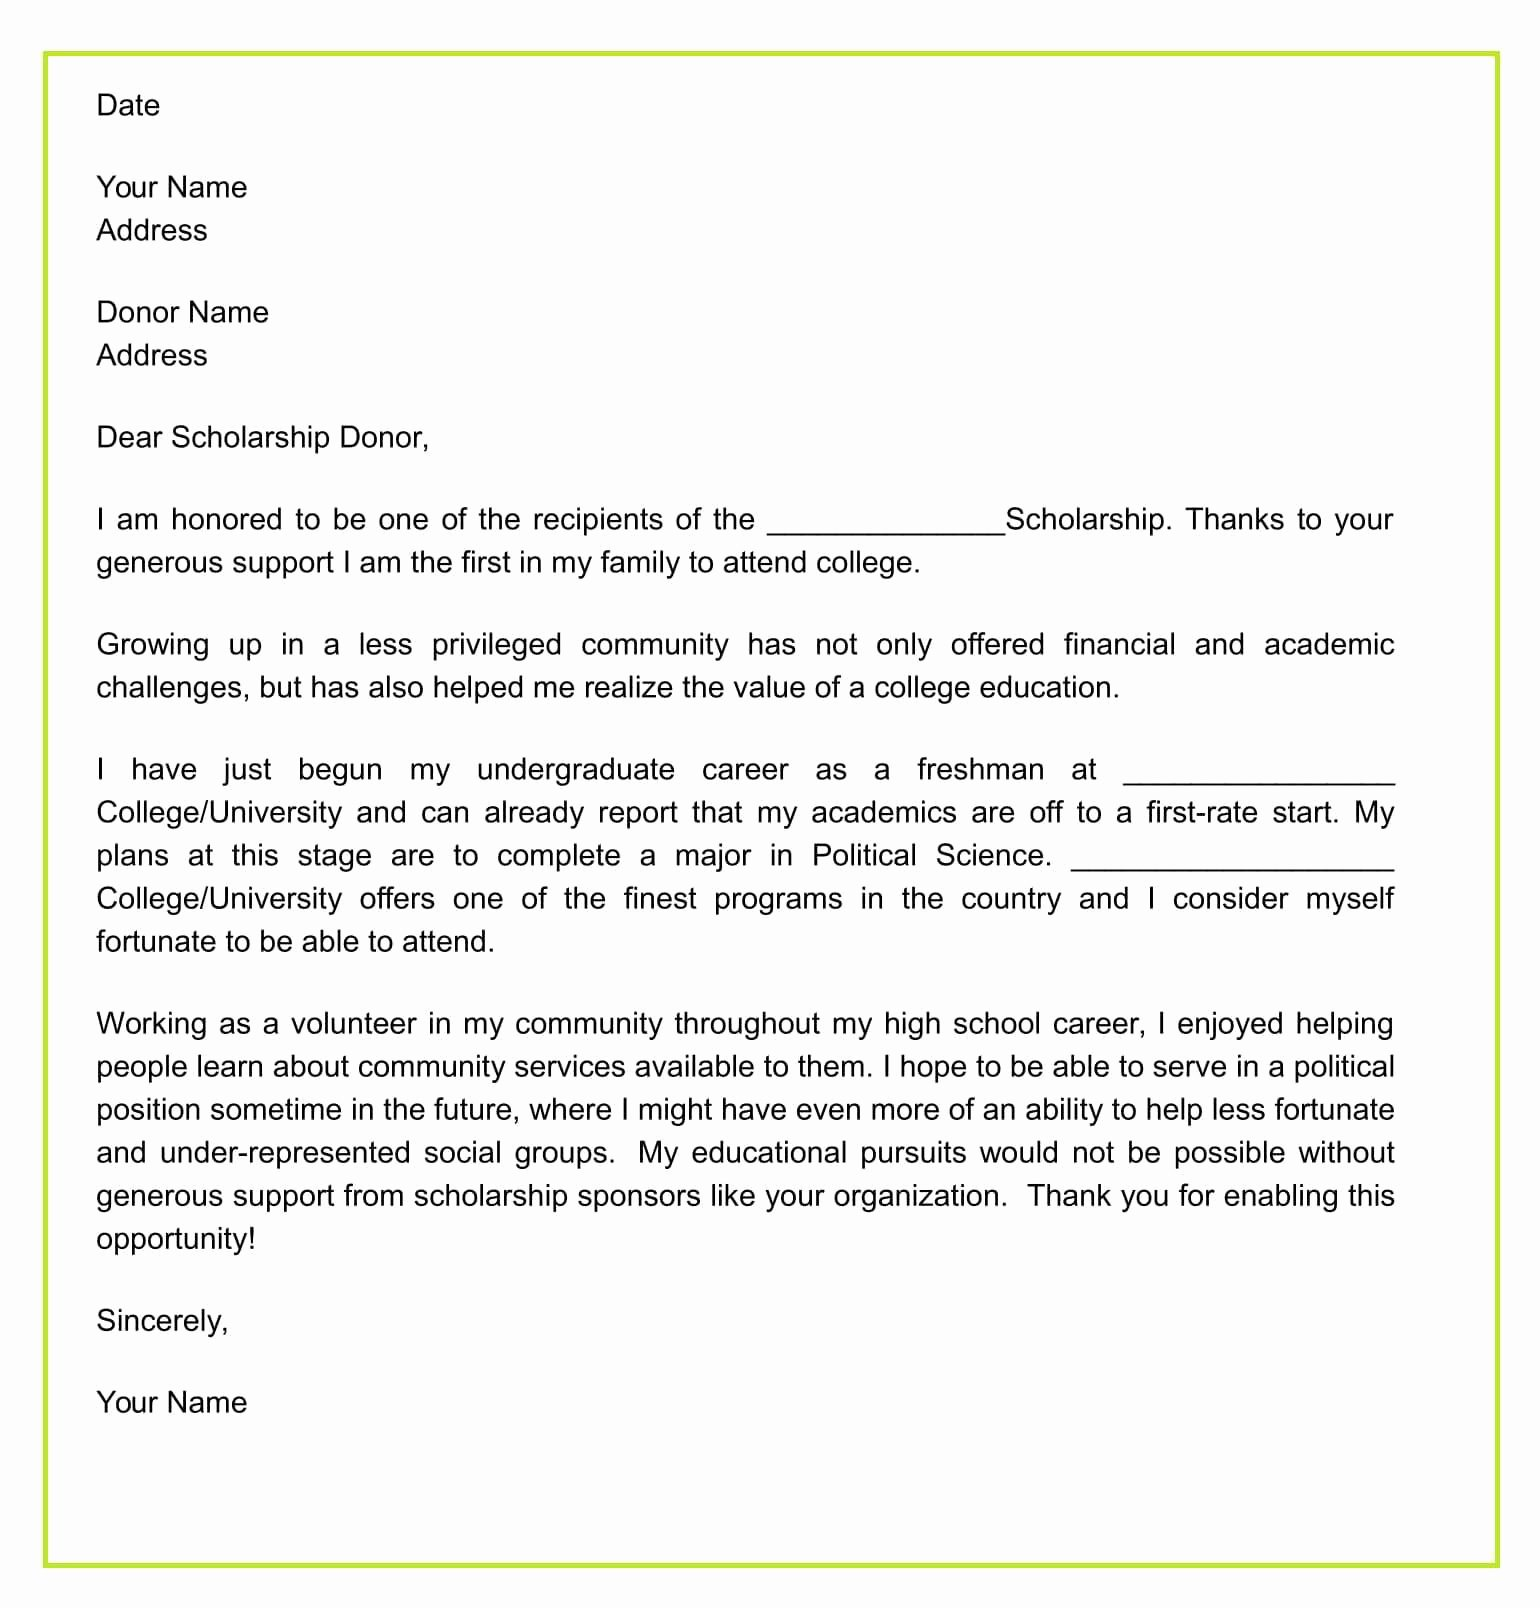 Scholarship Thank You Letter Template Elegant How to Write Thank You Letter for Scholarship